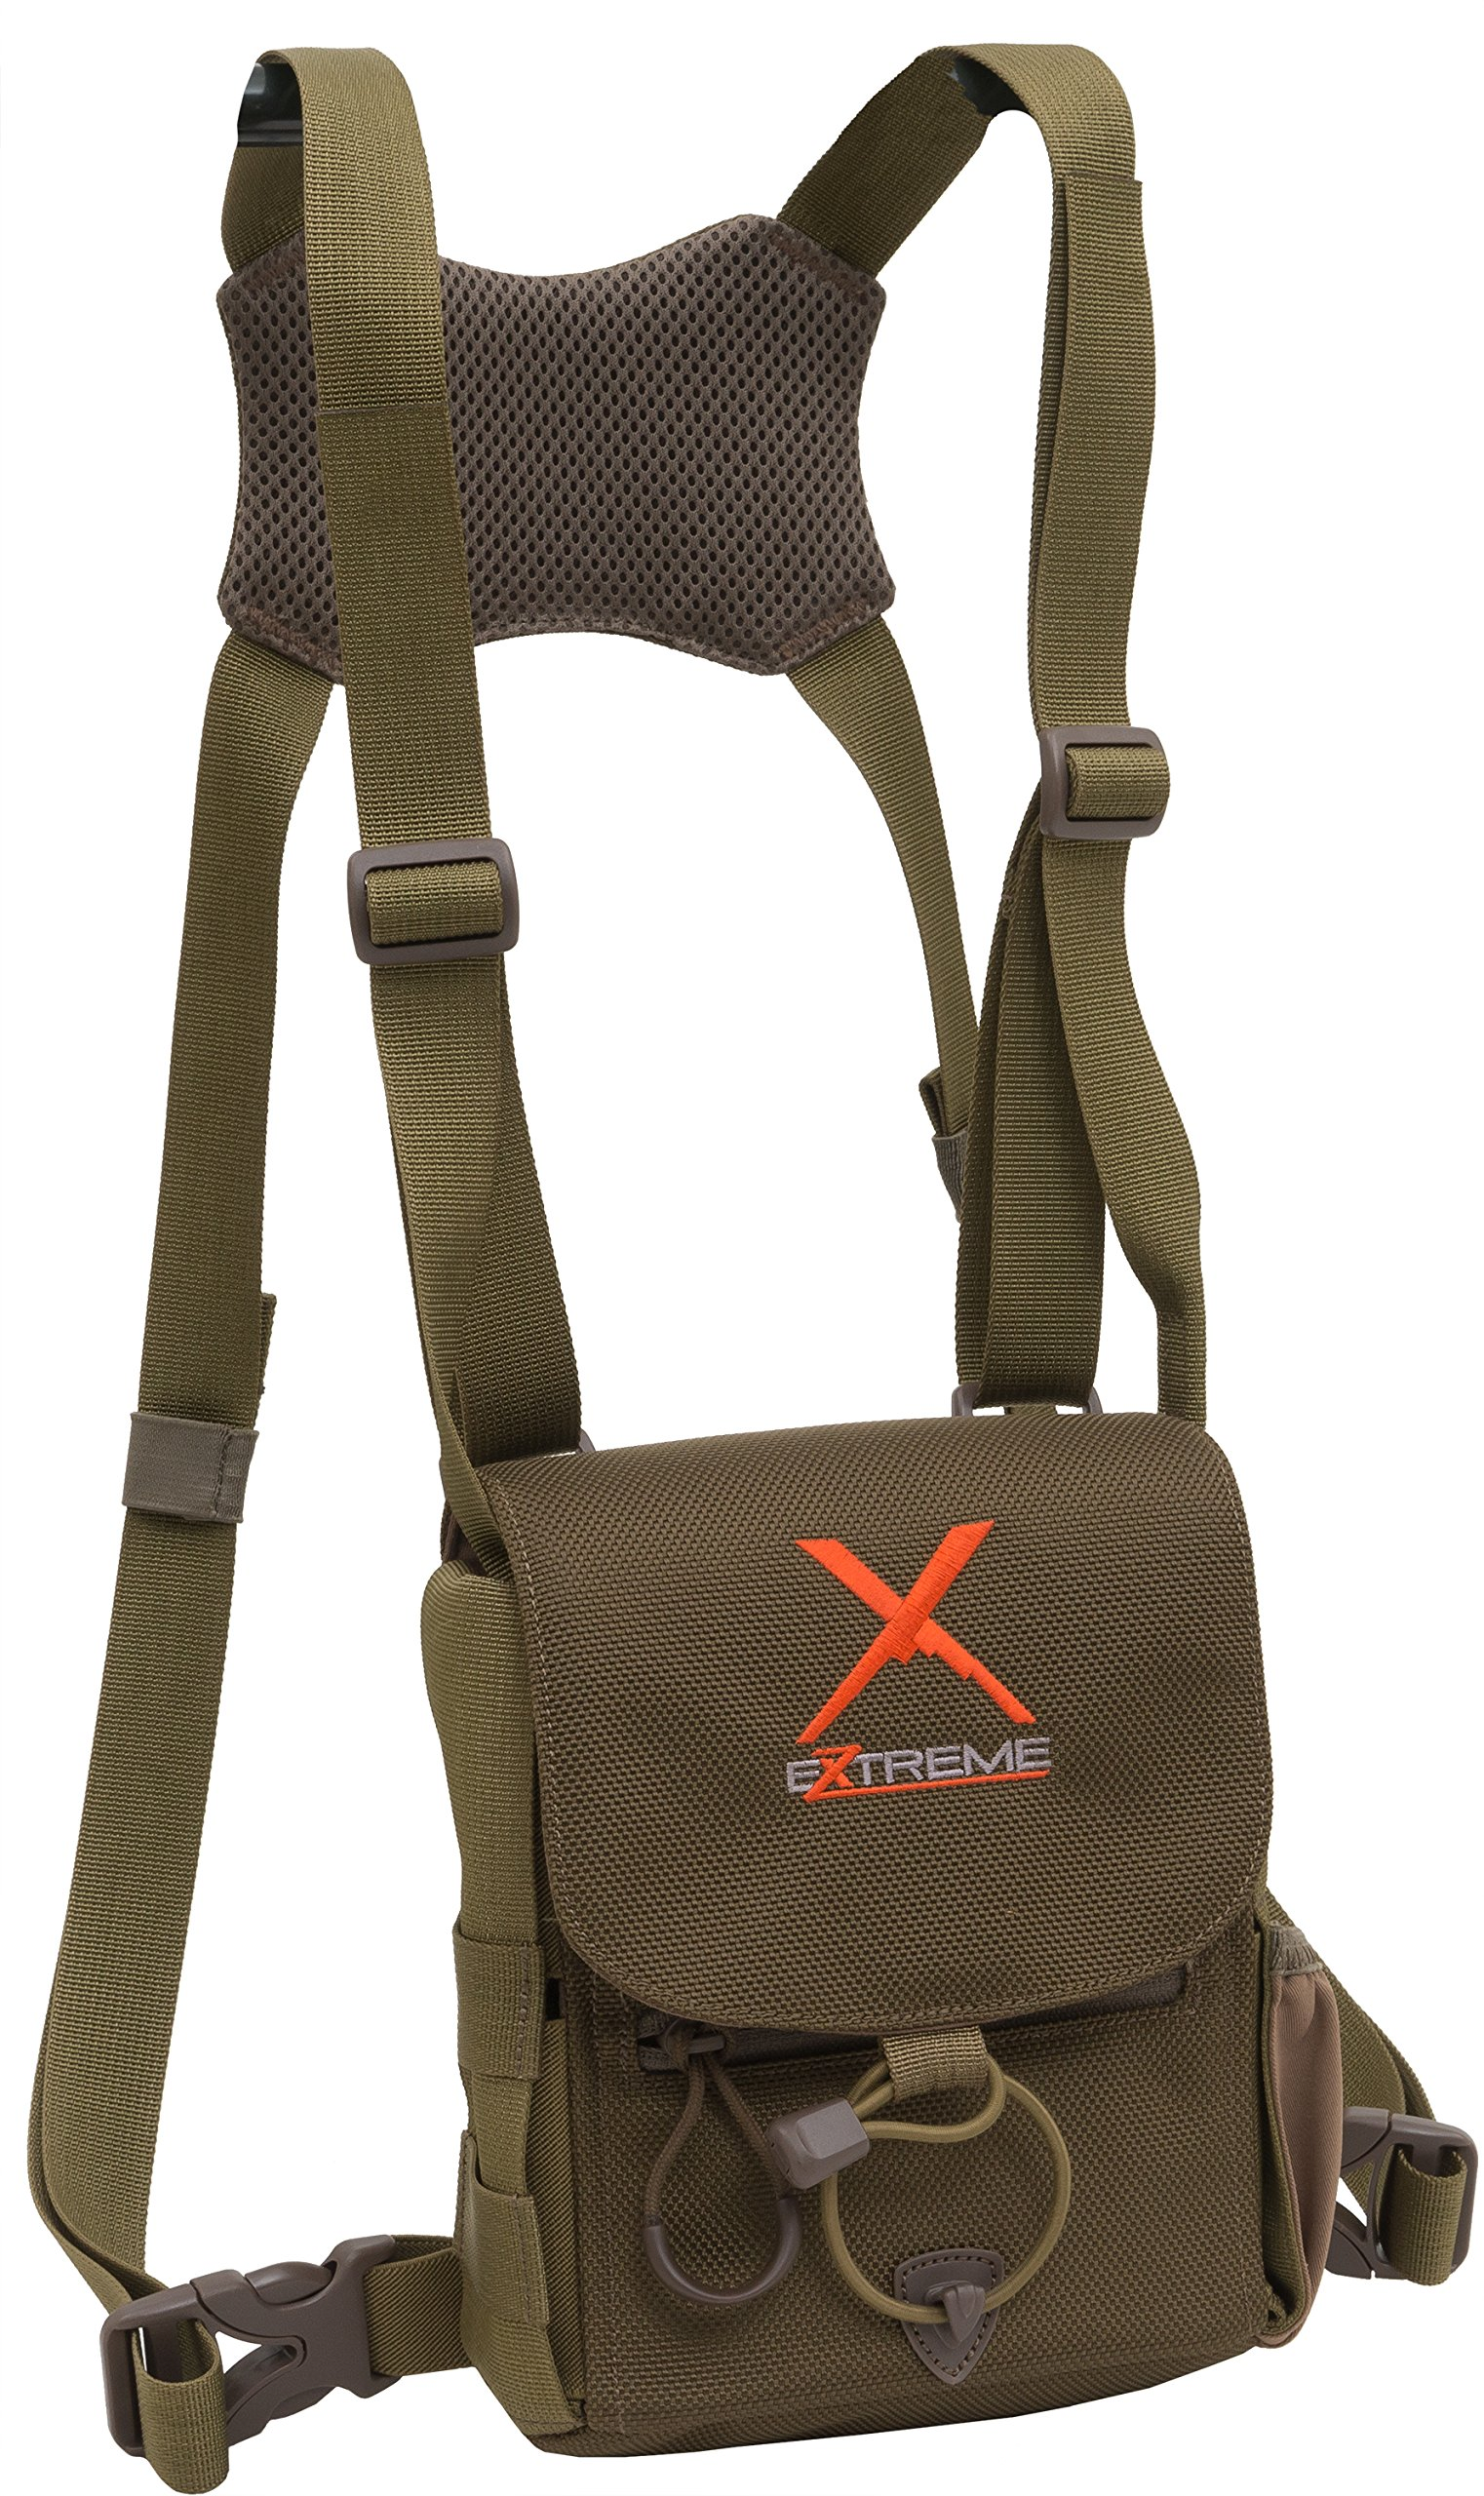 ALPS OutdoorZ Extreme Bino Harness X by ALPS OutdoorZ (Image #1)